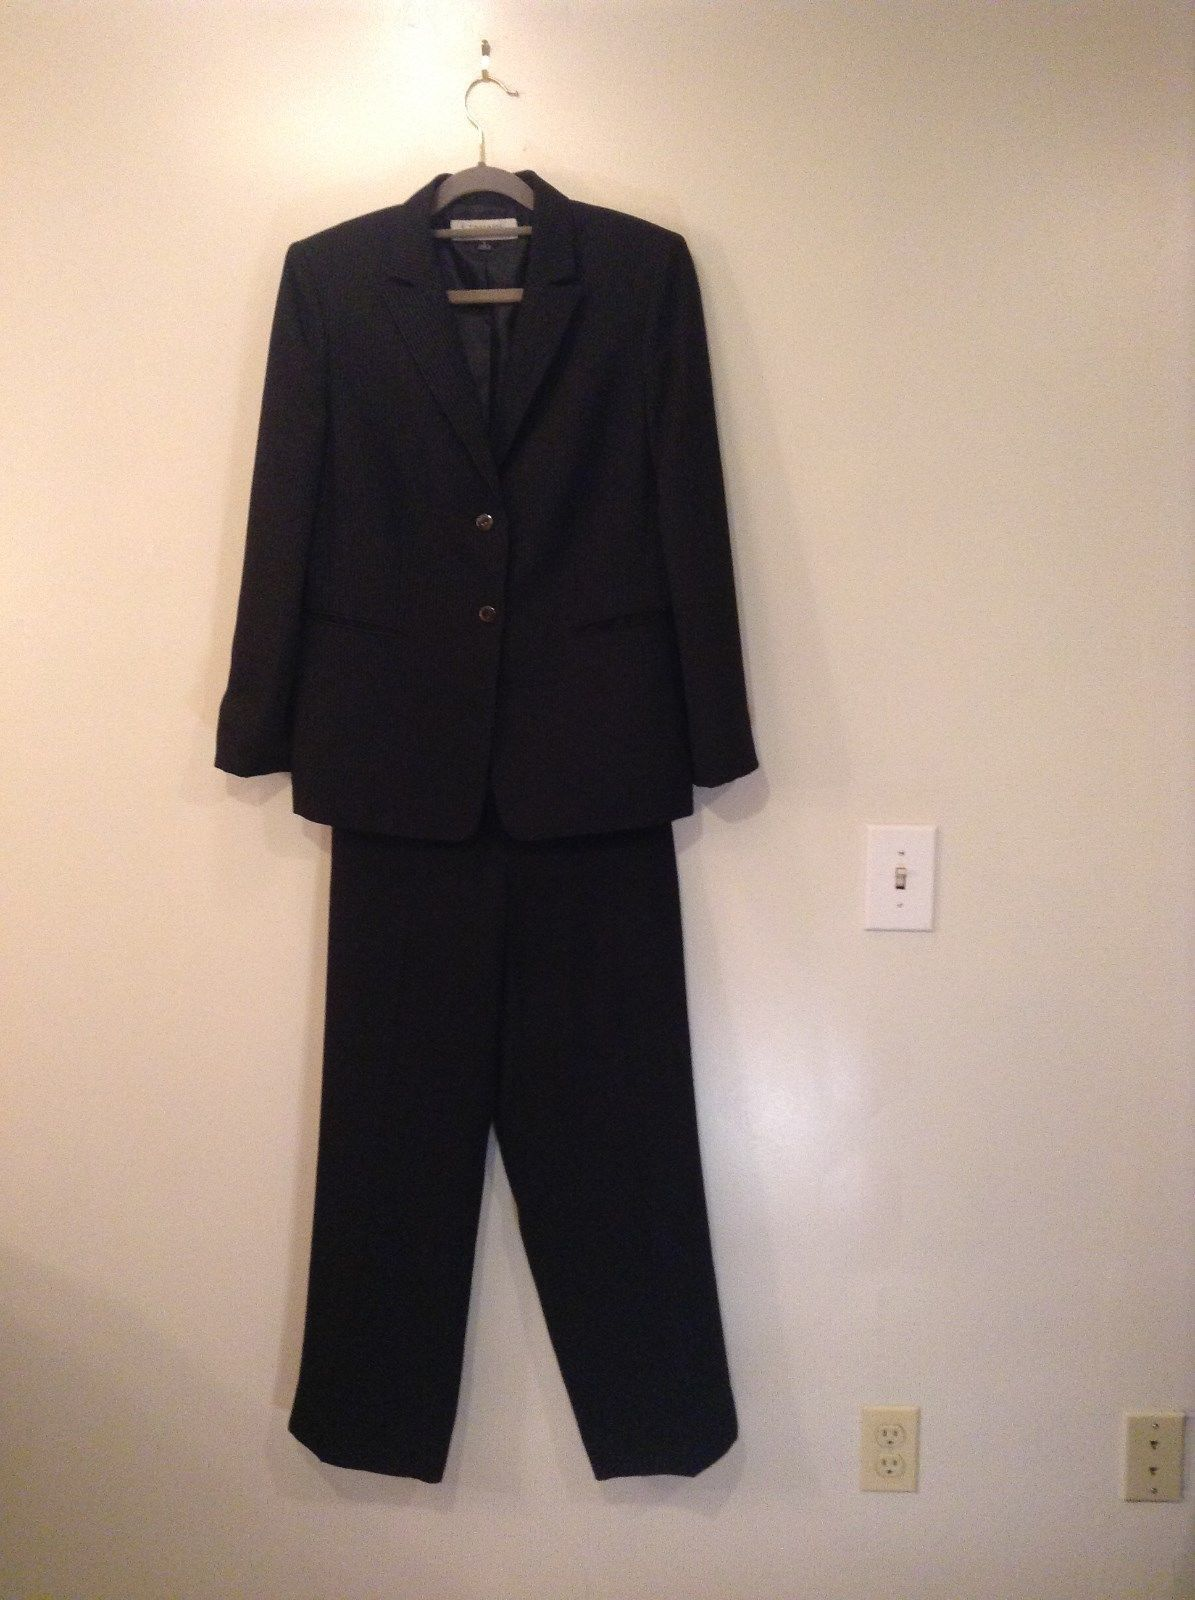 Black with Tiny White Stripes Jacket and Pant Suit Tahari Arthur S Levine Size 8